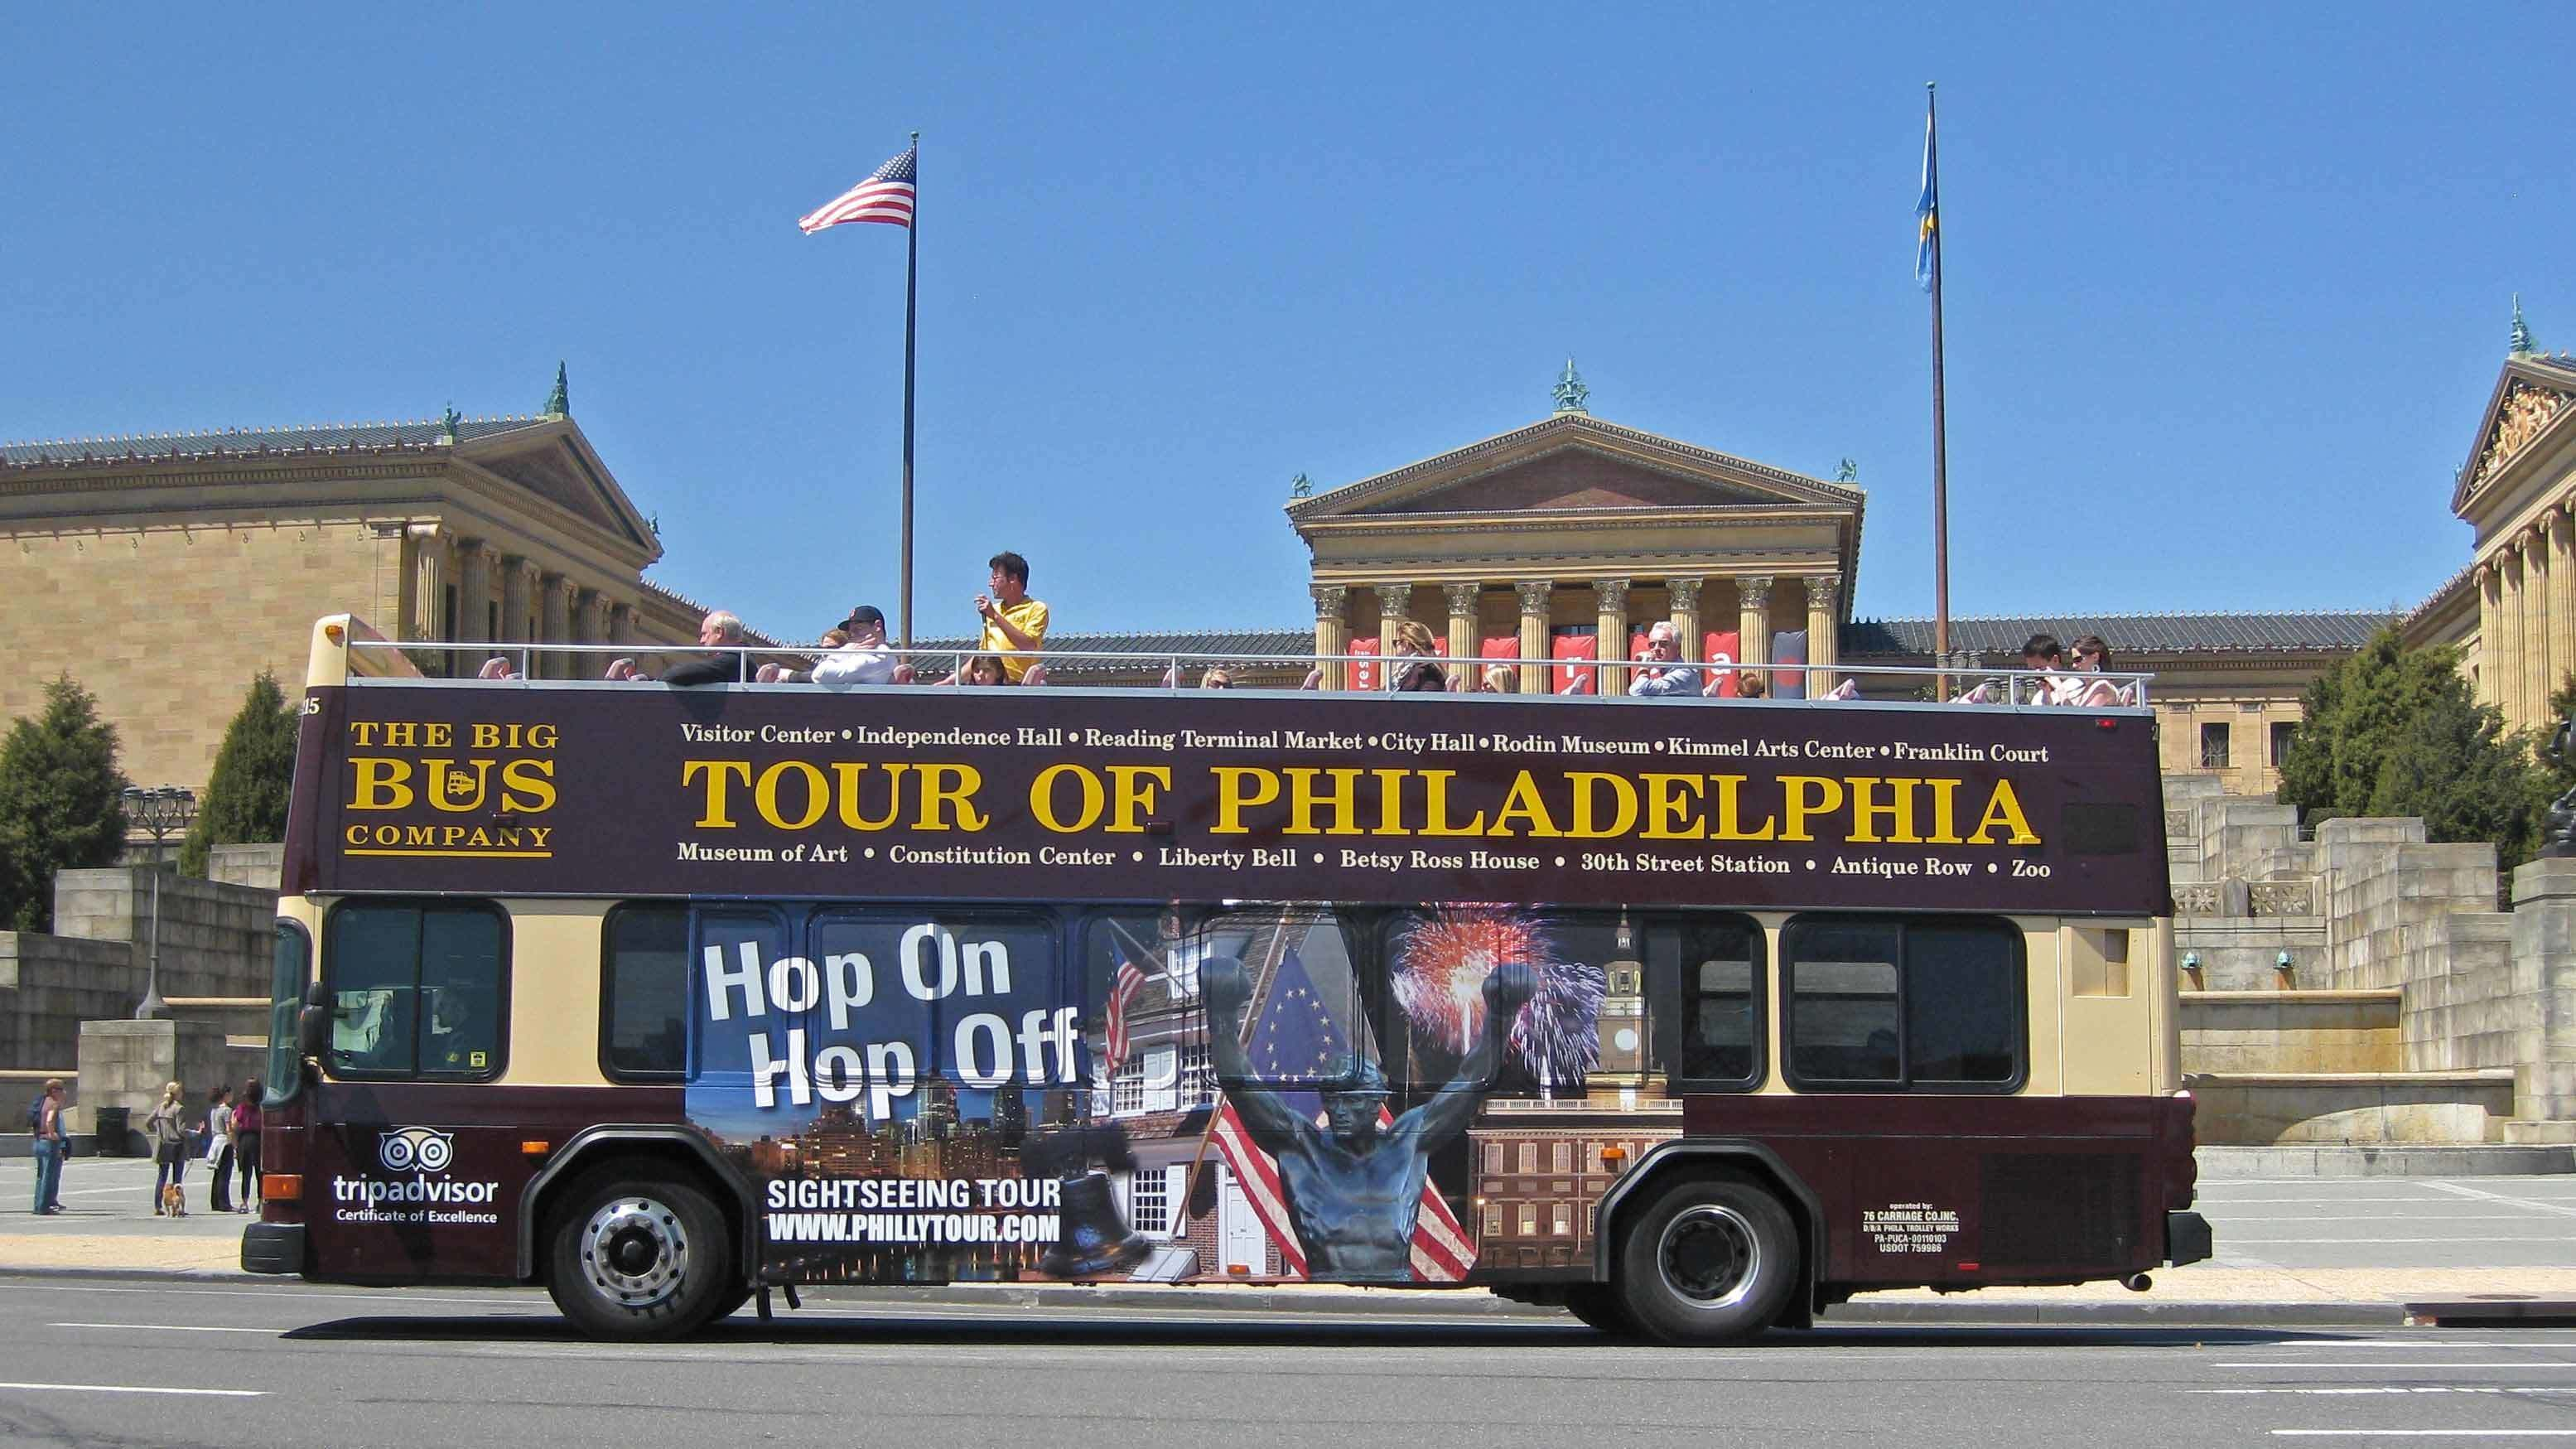 Tour bus in Philadelphia